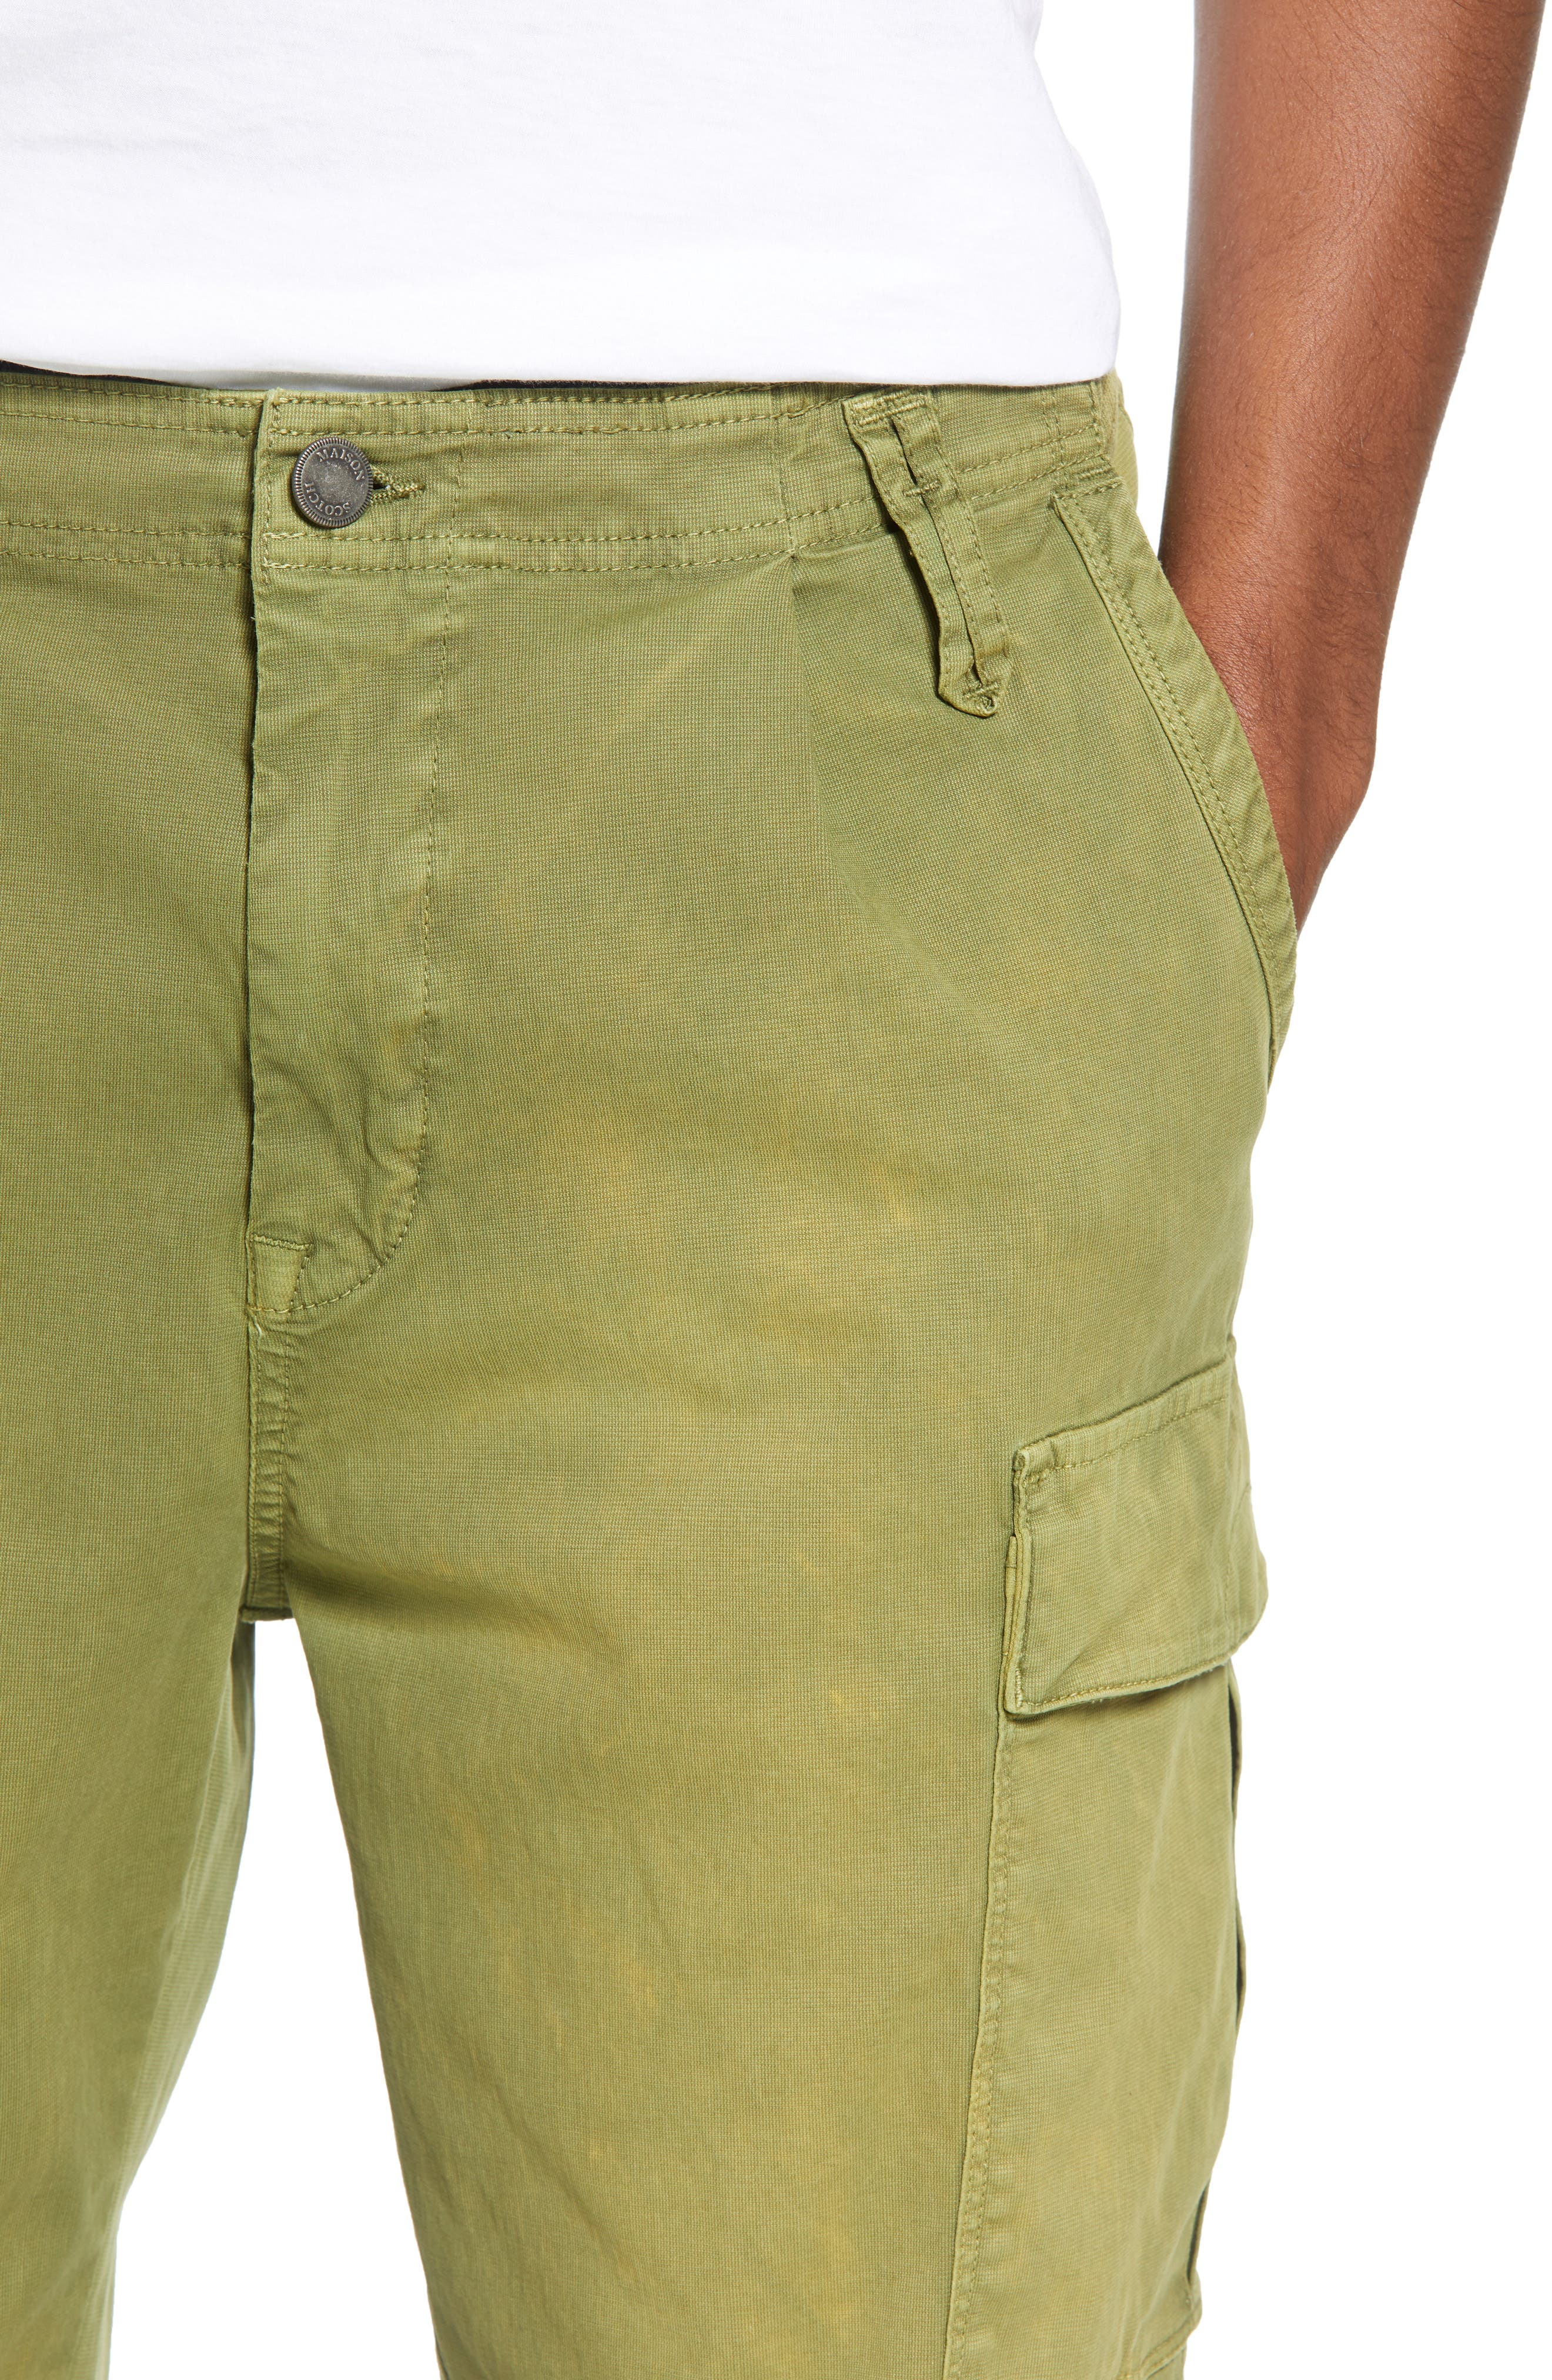 SCOTCH & SODA,                             Loose Taper Fit Washed Cargo Pants,                             Alternate thumbnail 4, color,                             MILITARY